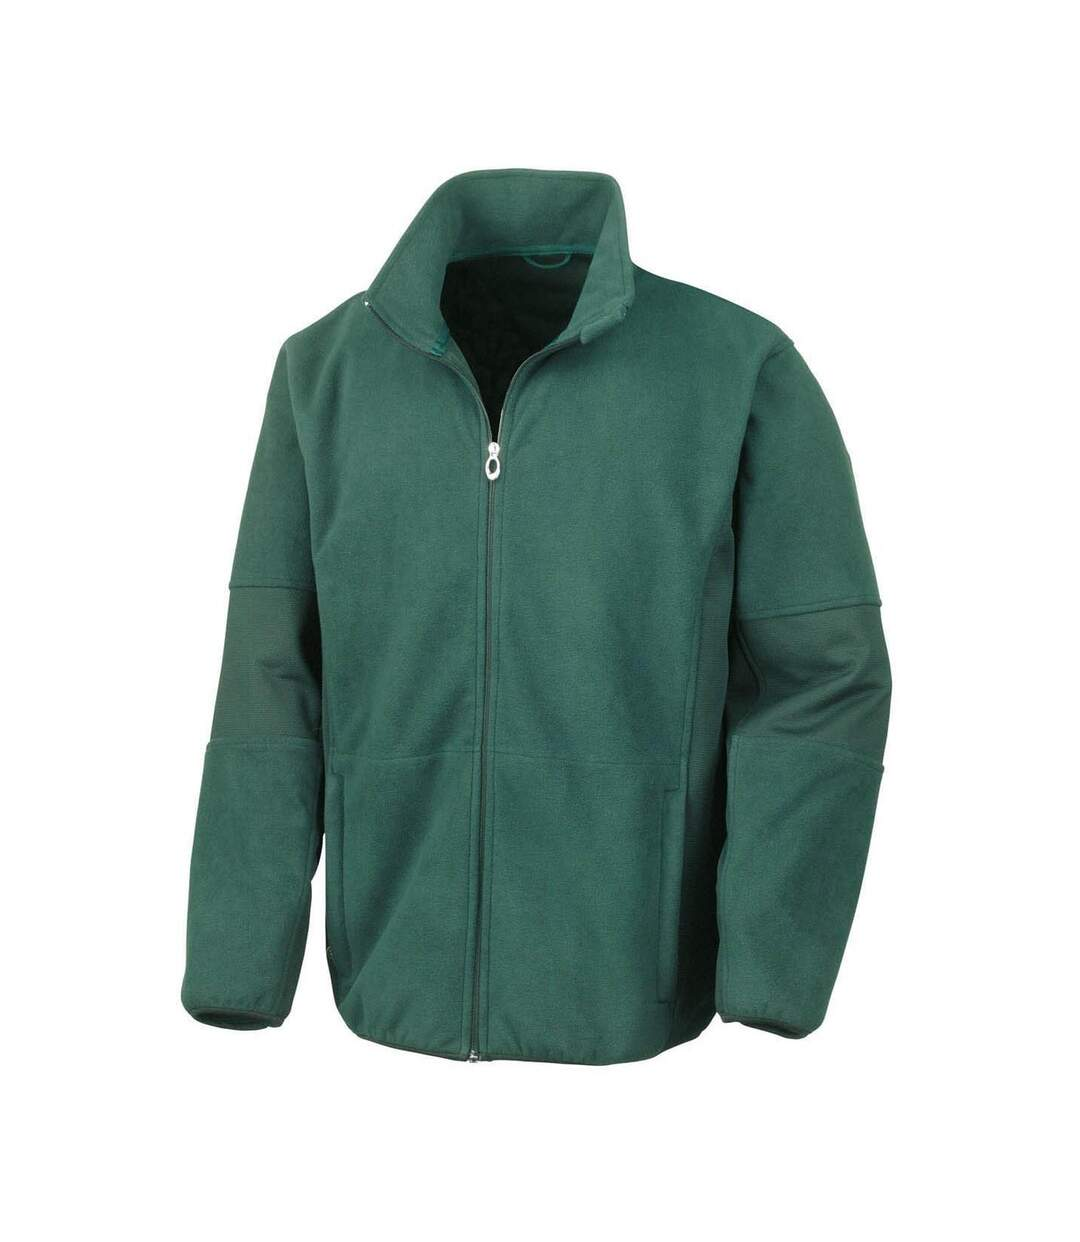 Result Mens Osaka TECH Performance Combined Pile Softshell Waterproof Windproof Jacket (Forest Green) - UTBC867